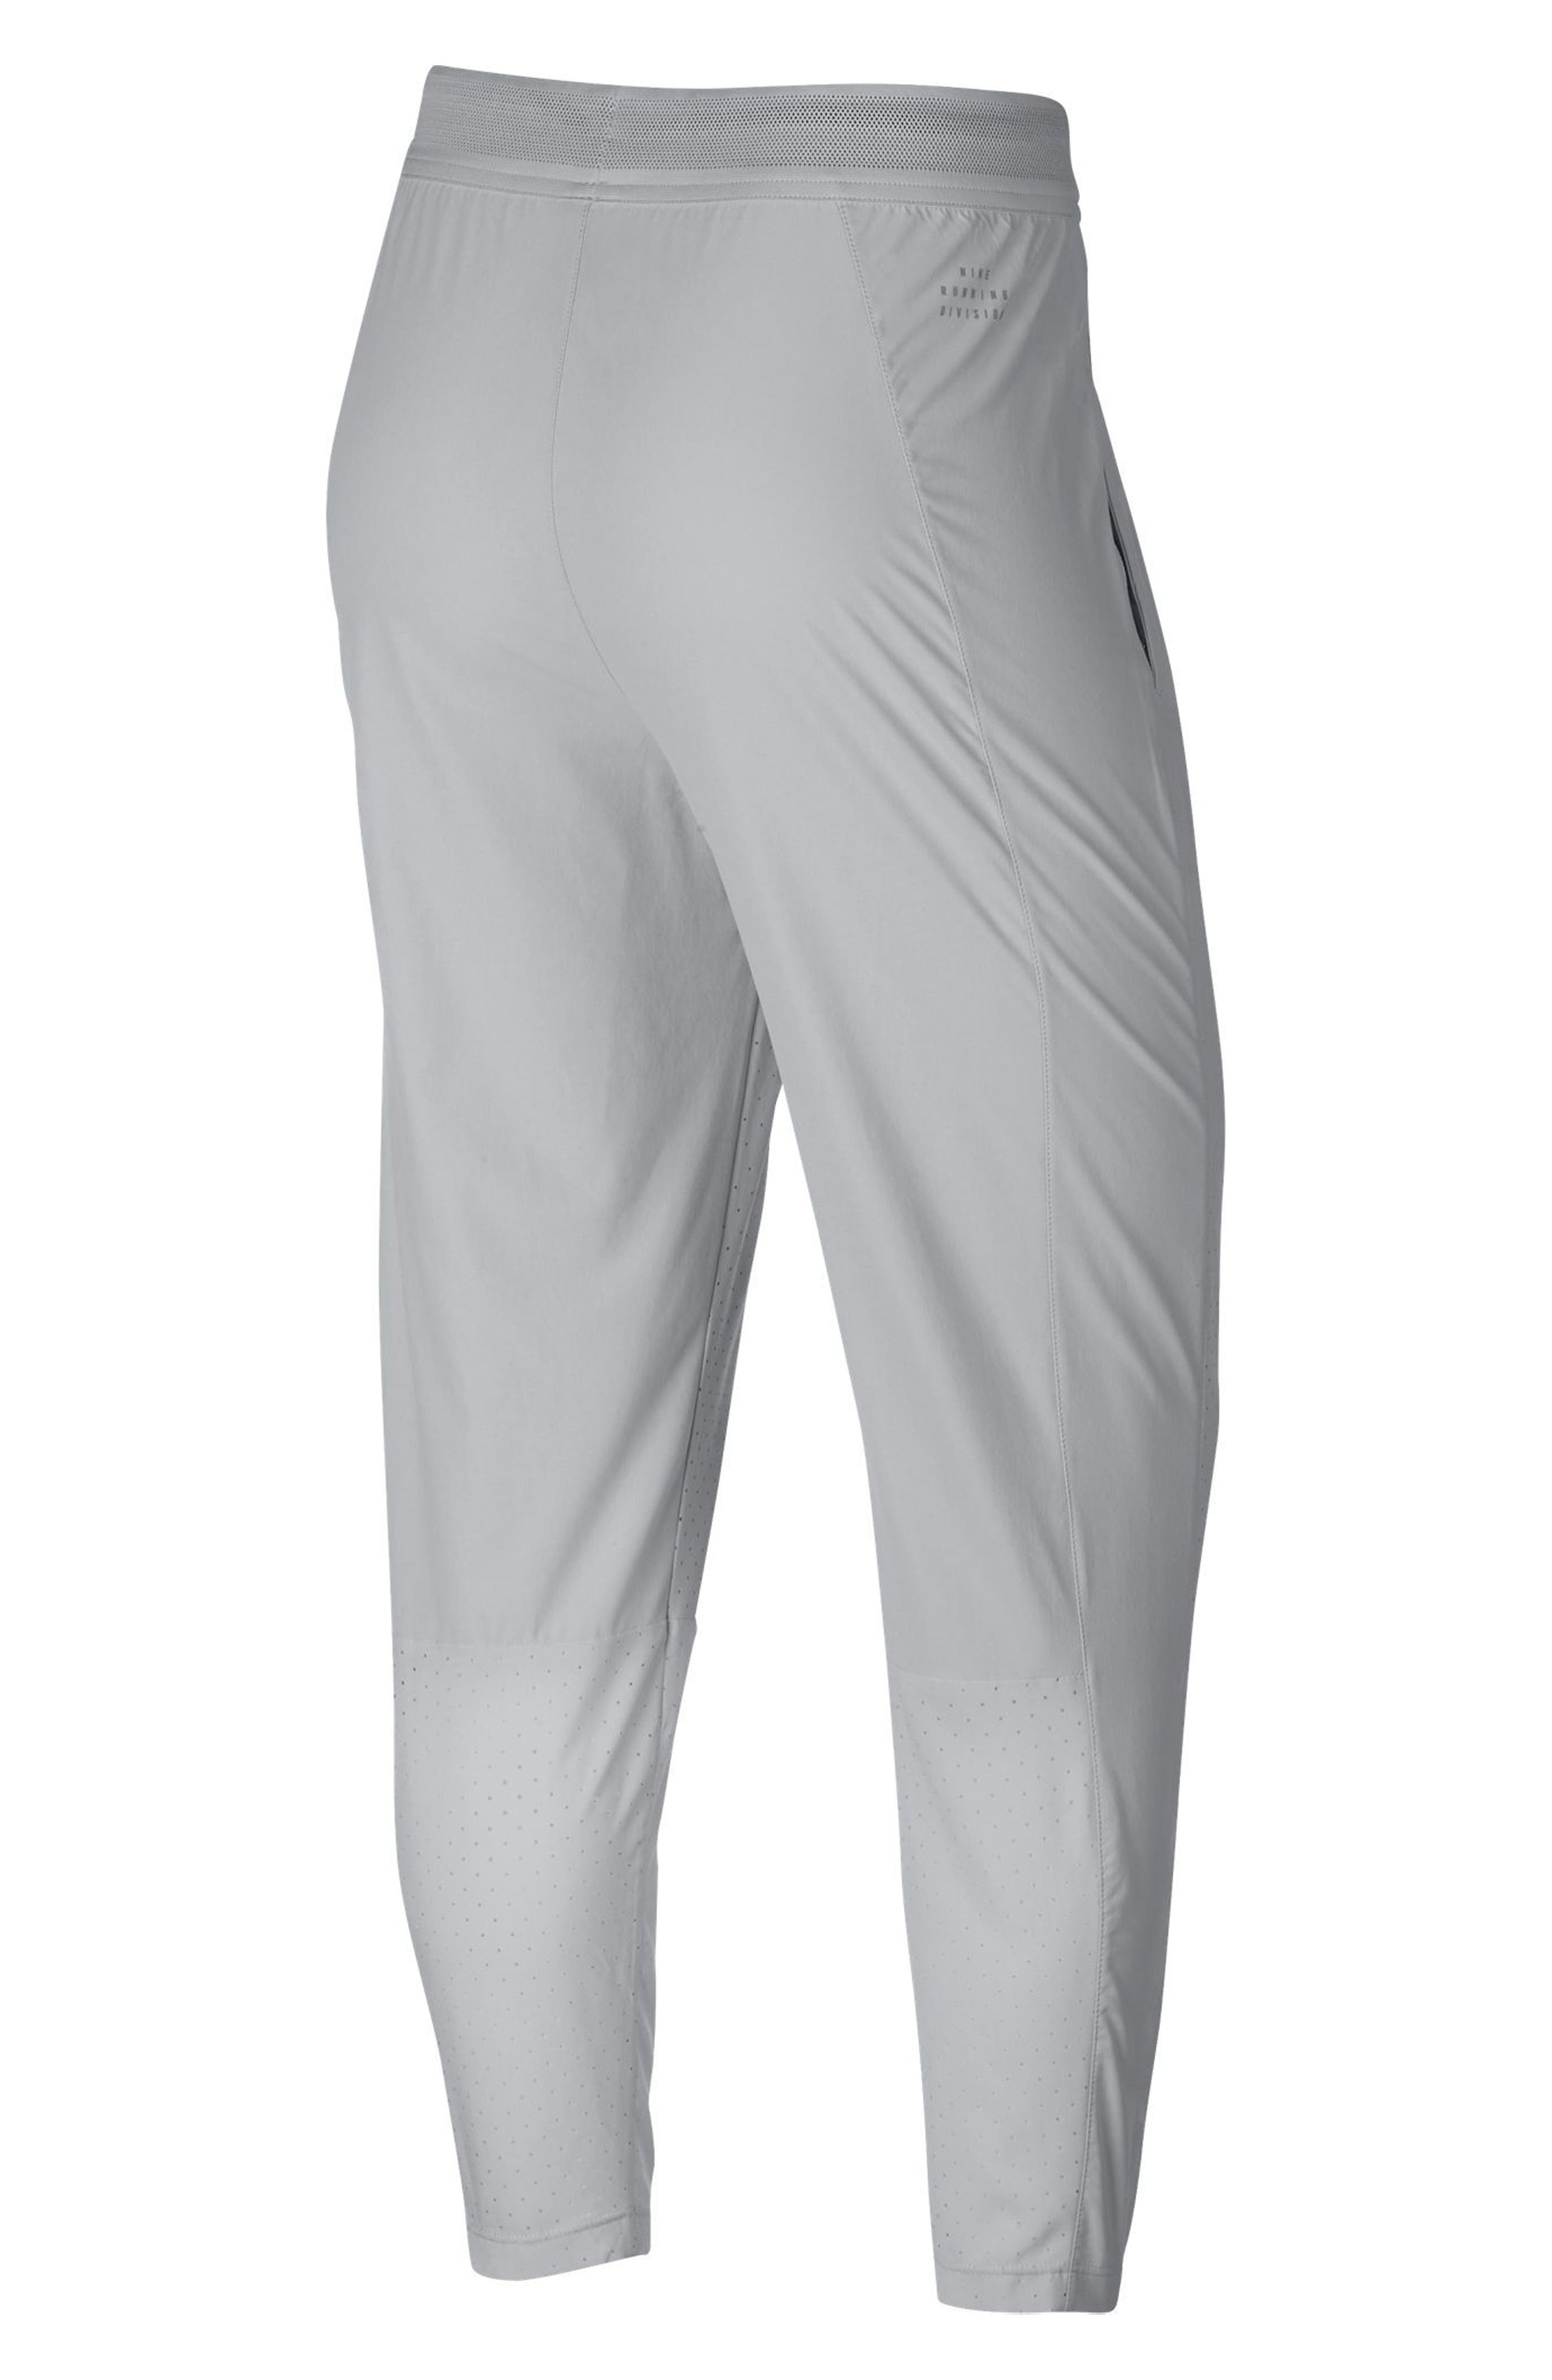 Perforated Running Pants,                             Alternate thumbnail 8, color,                             VAST GREY/ VAST GREY